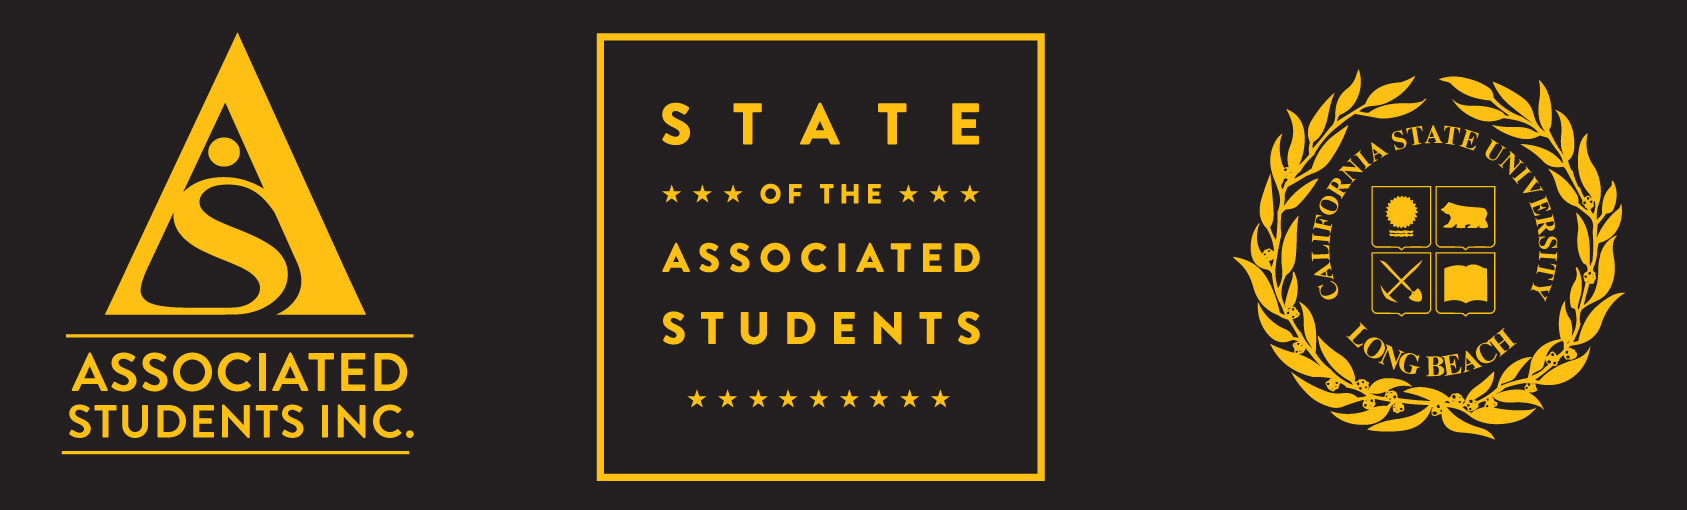 President Salazar's State of the A.S. Banner